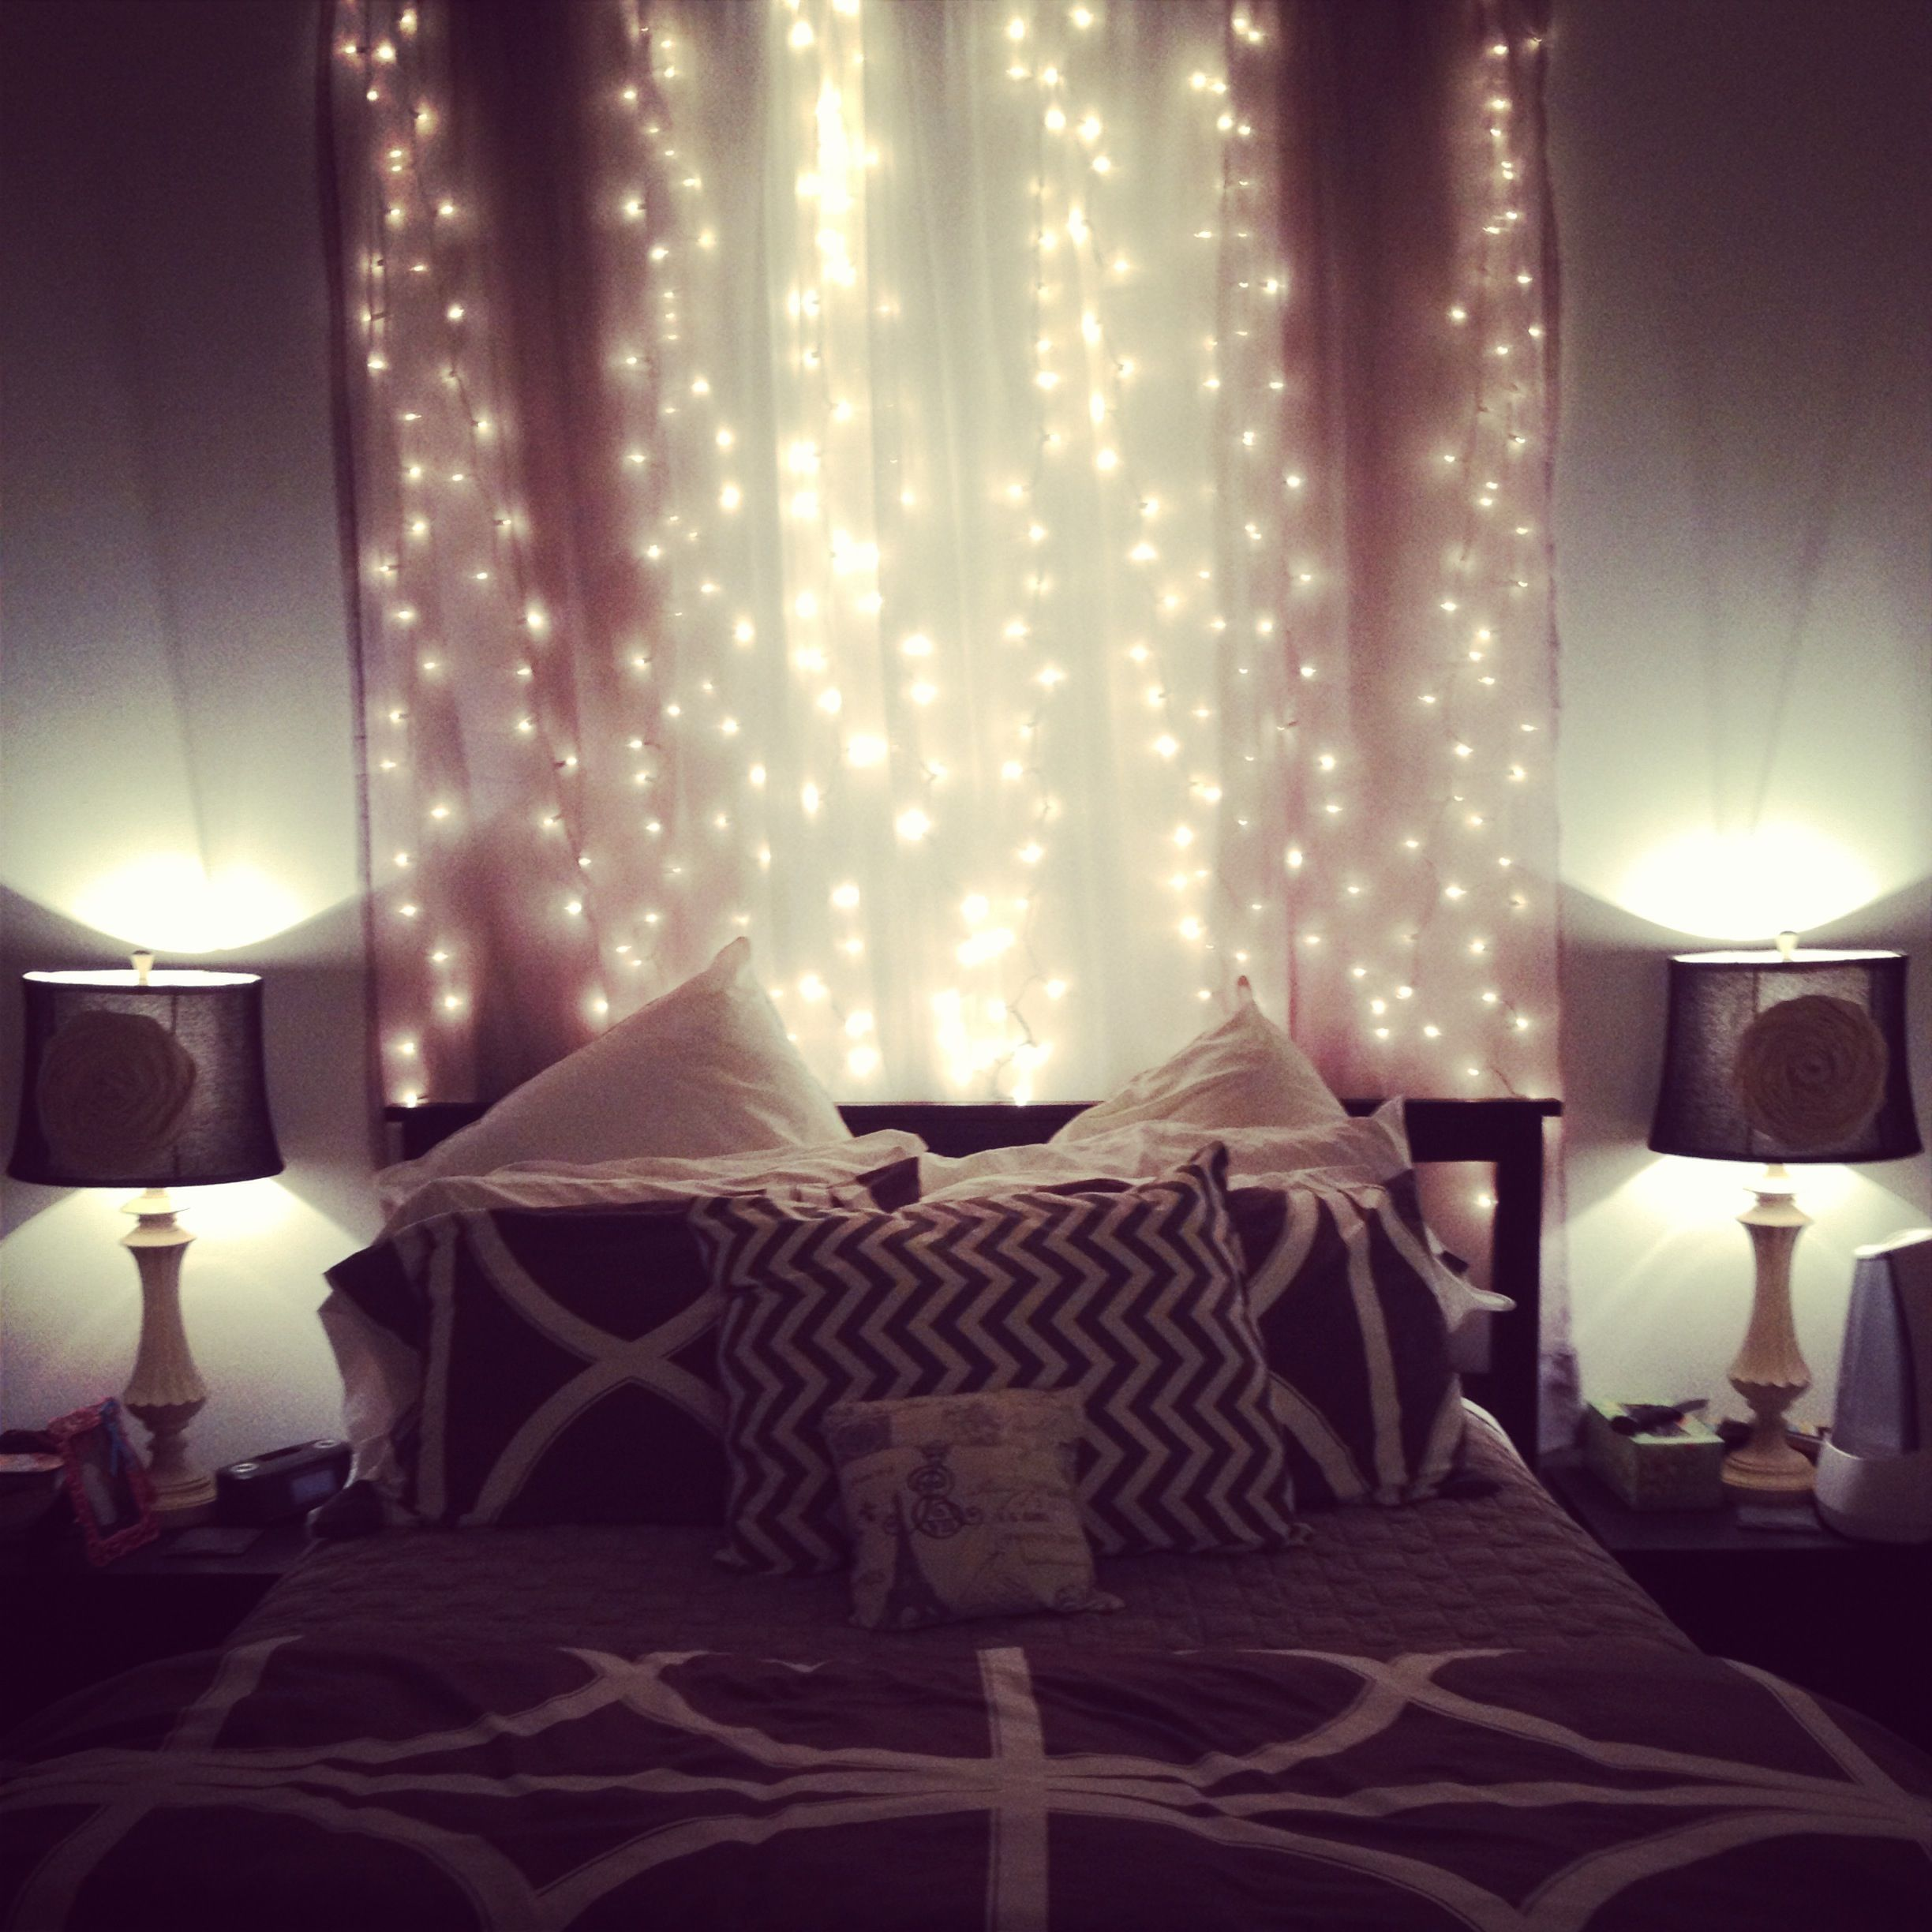 Fairy lights in the bedroom bedroom ideas pinterest for Room decor with fairy lights